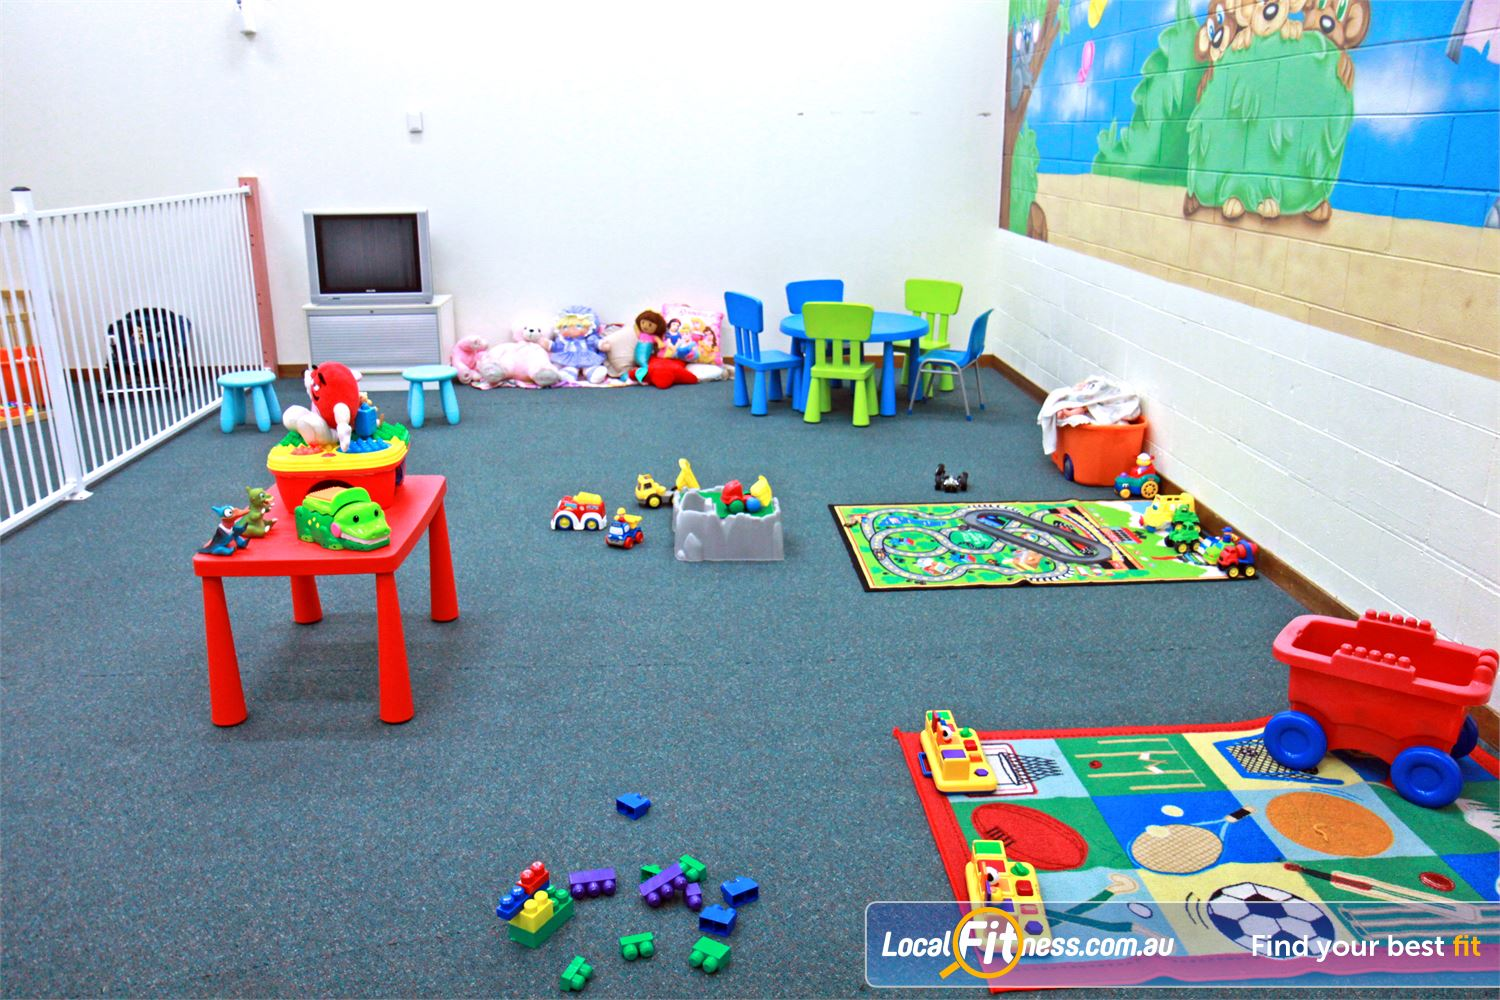 Fernwood Fitness Campbelltown Our Fernwood Campbelltown provides on-site child minding services.